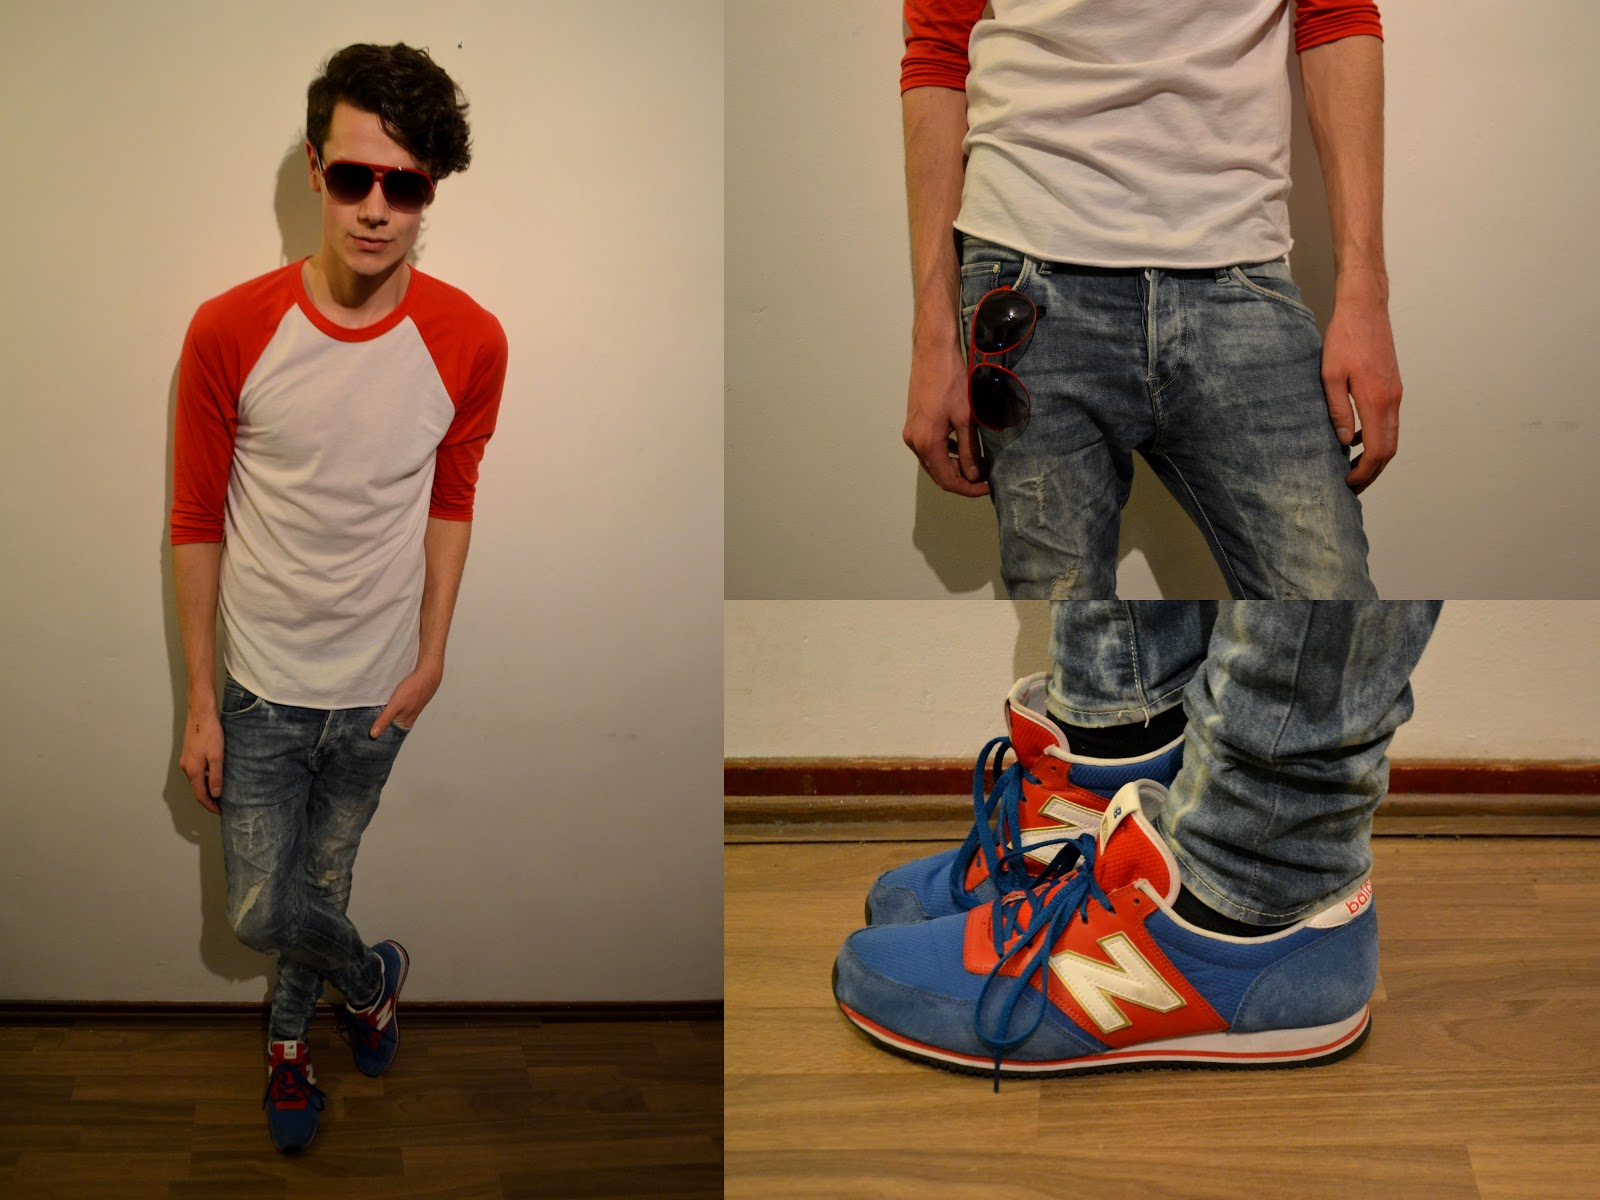 new balance 574 grey navy red and white tee